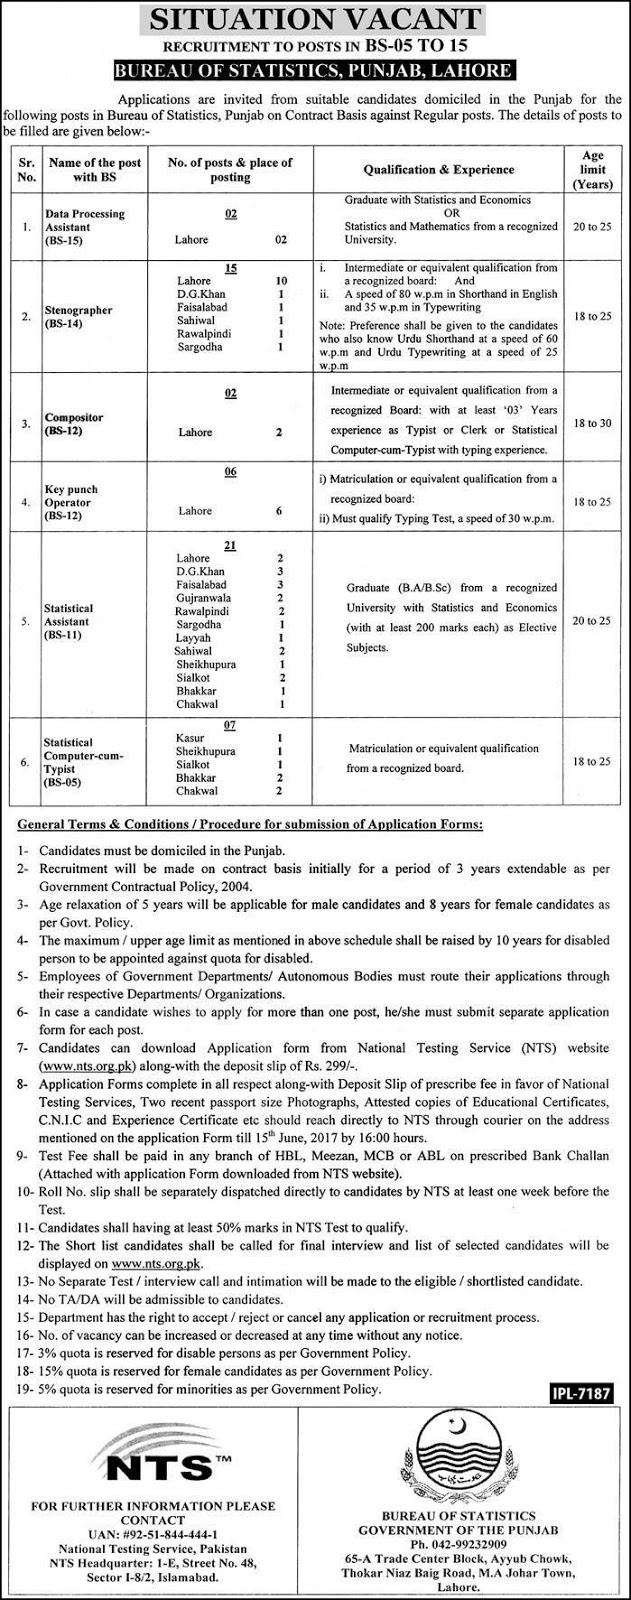 Bps-5 to Bps-15 Jobs In Bureau Of Statistics Punjab Lahore 1 June 2017